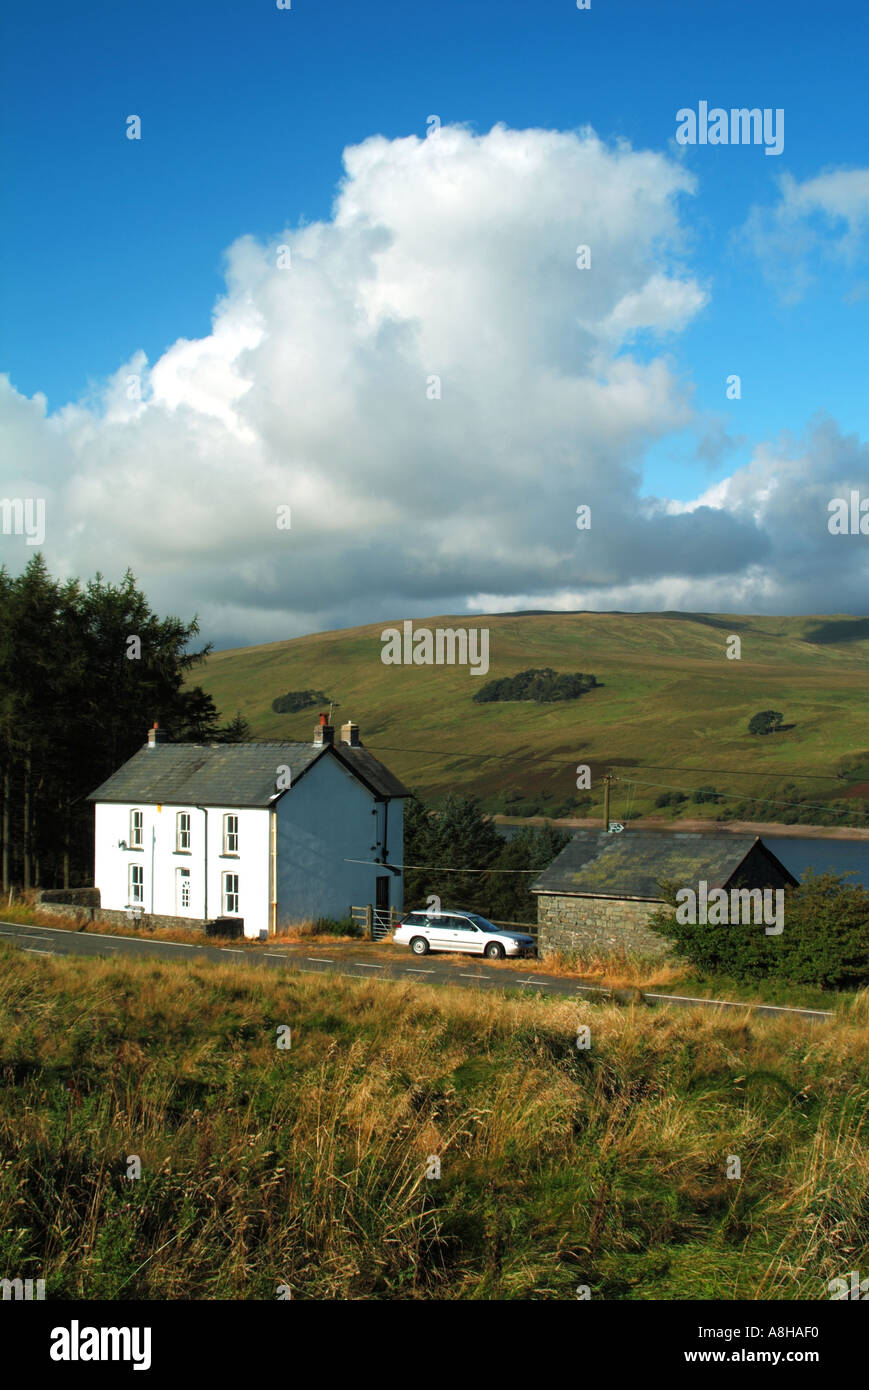 Welsh Country Cottage Stock Photos Amp Welsh Country Cottage